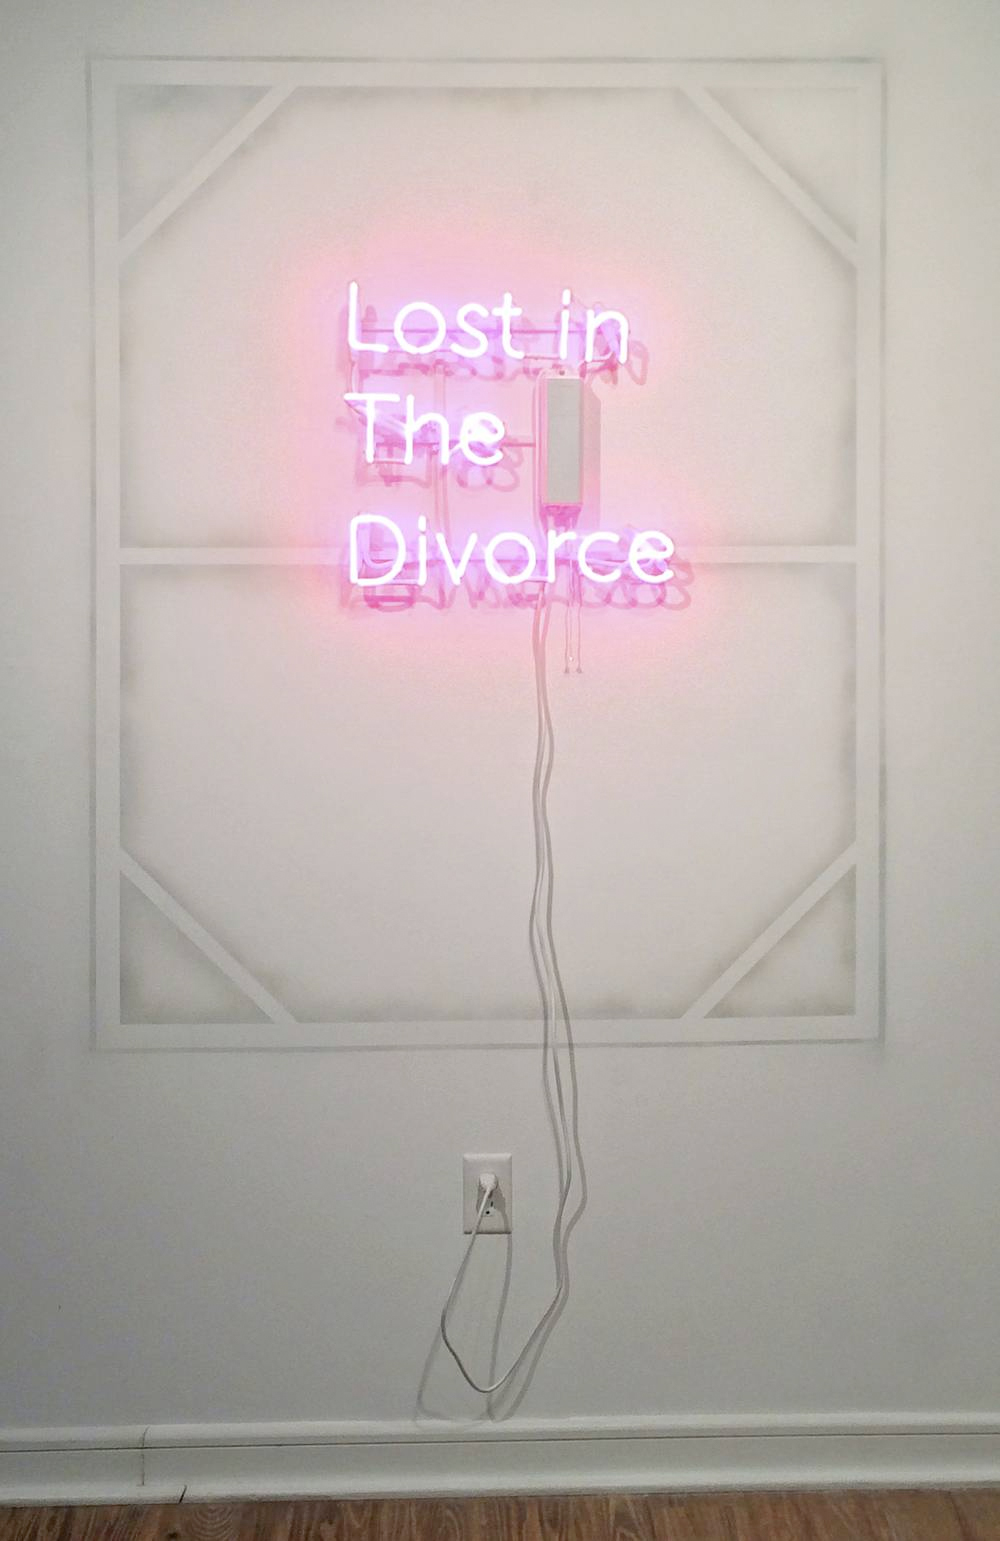 John Bell - Lost in the Divorce